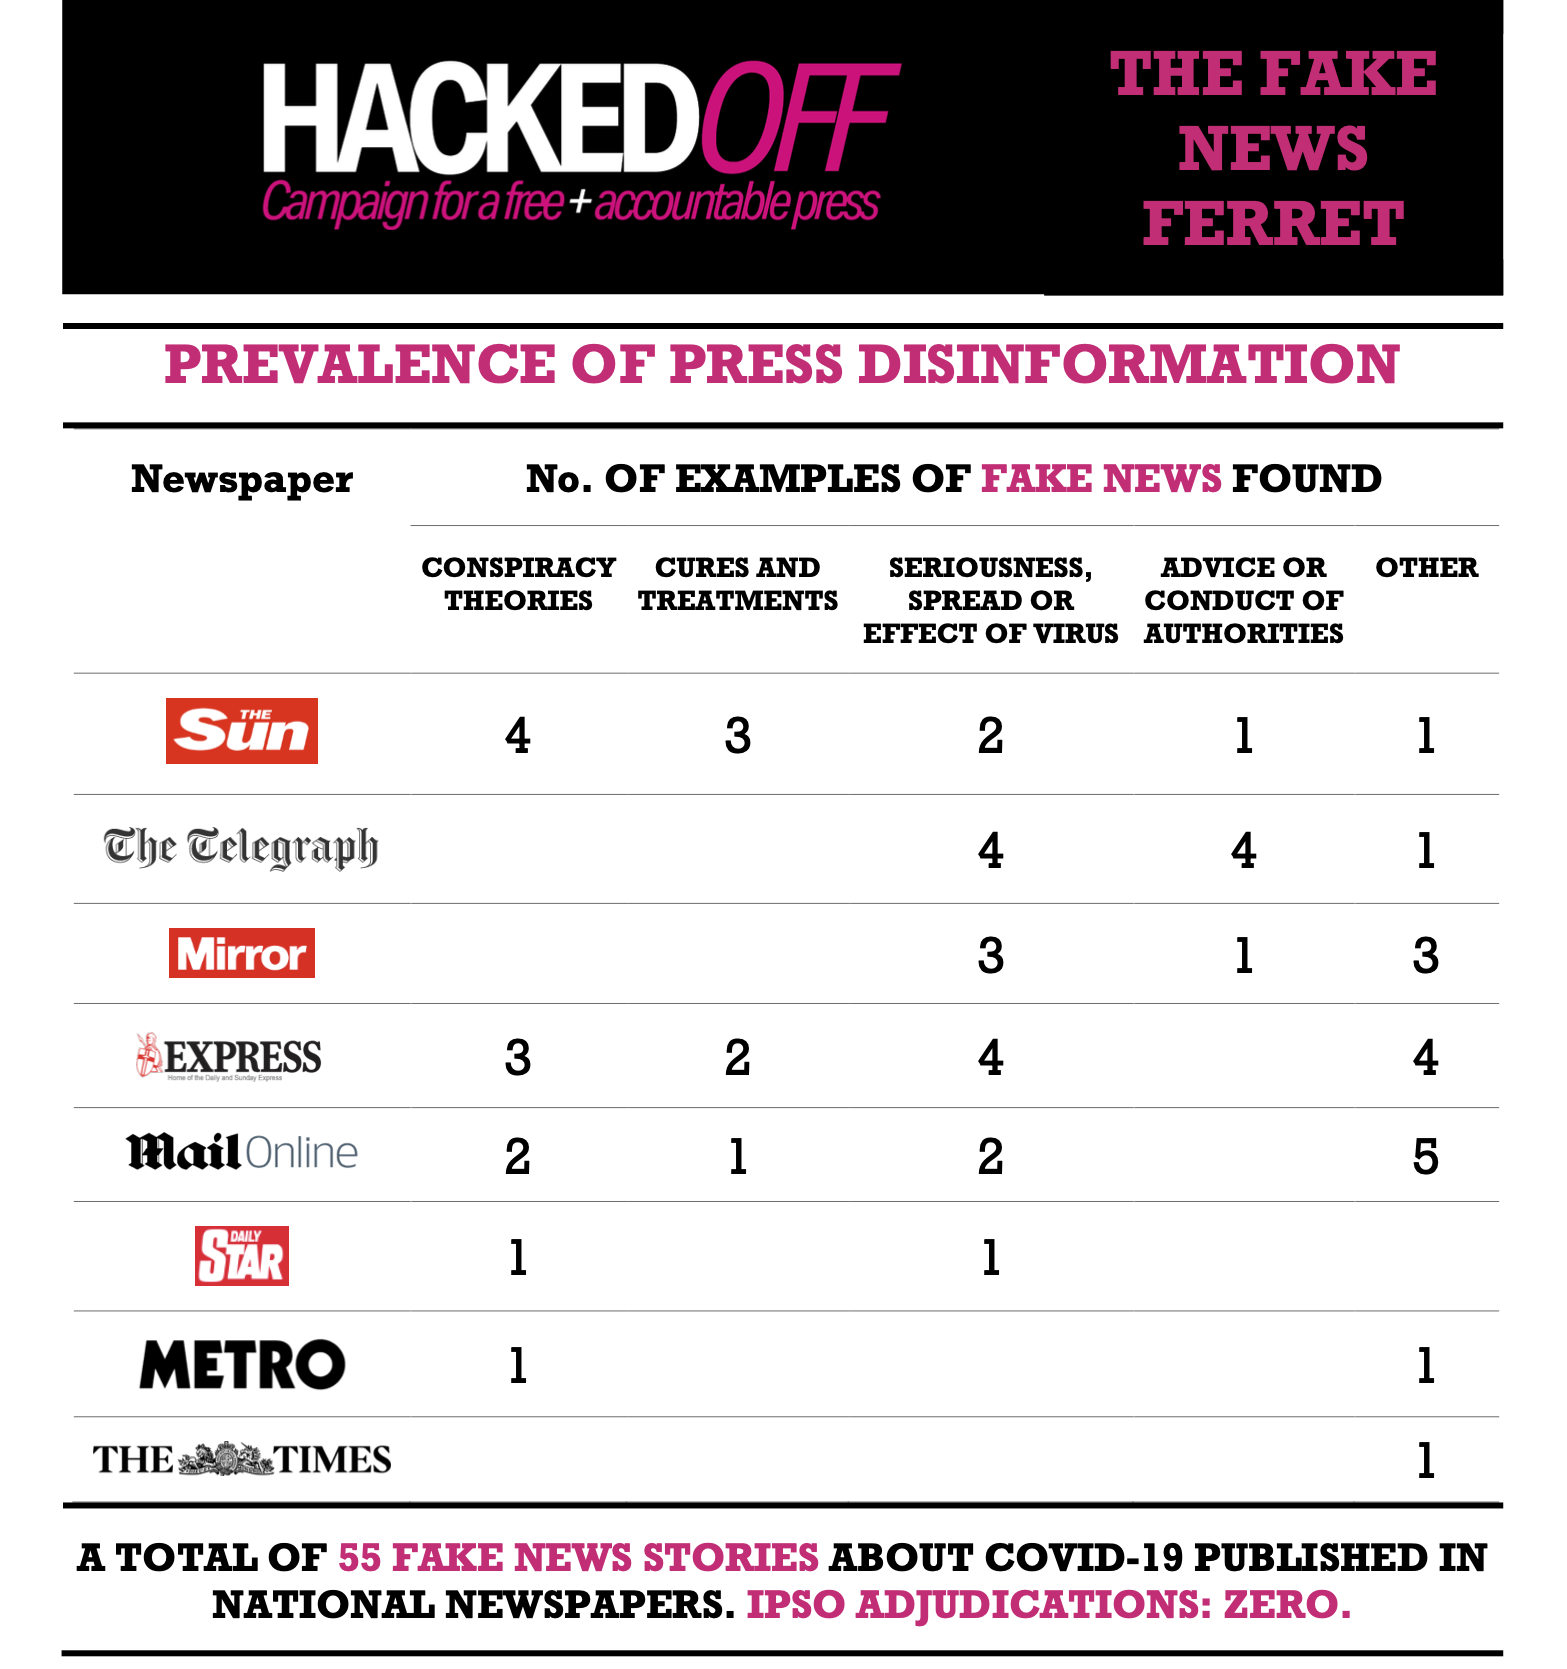 Hacked Off Covid-19 Fake News Report - UK Media Outlets Fake News Tally